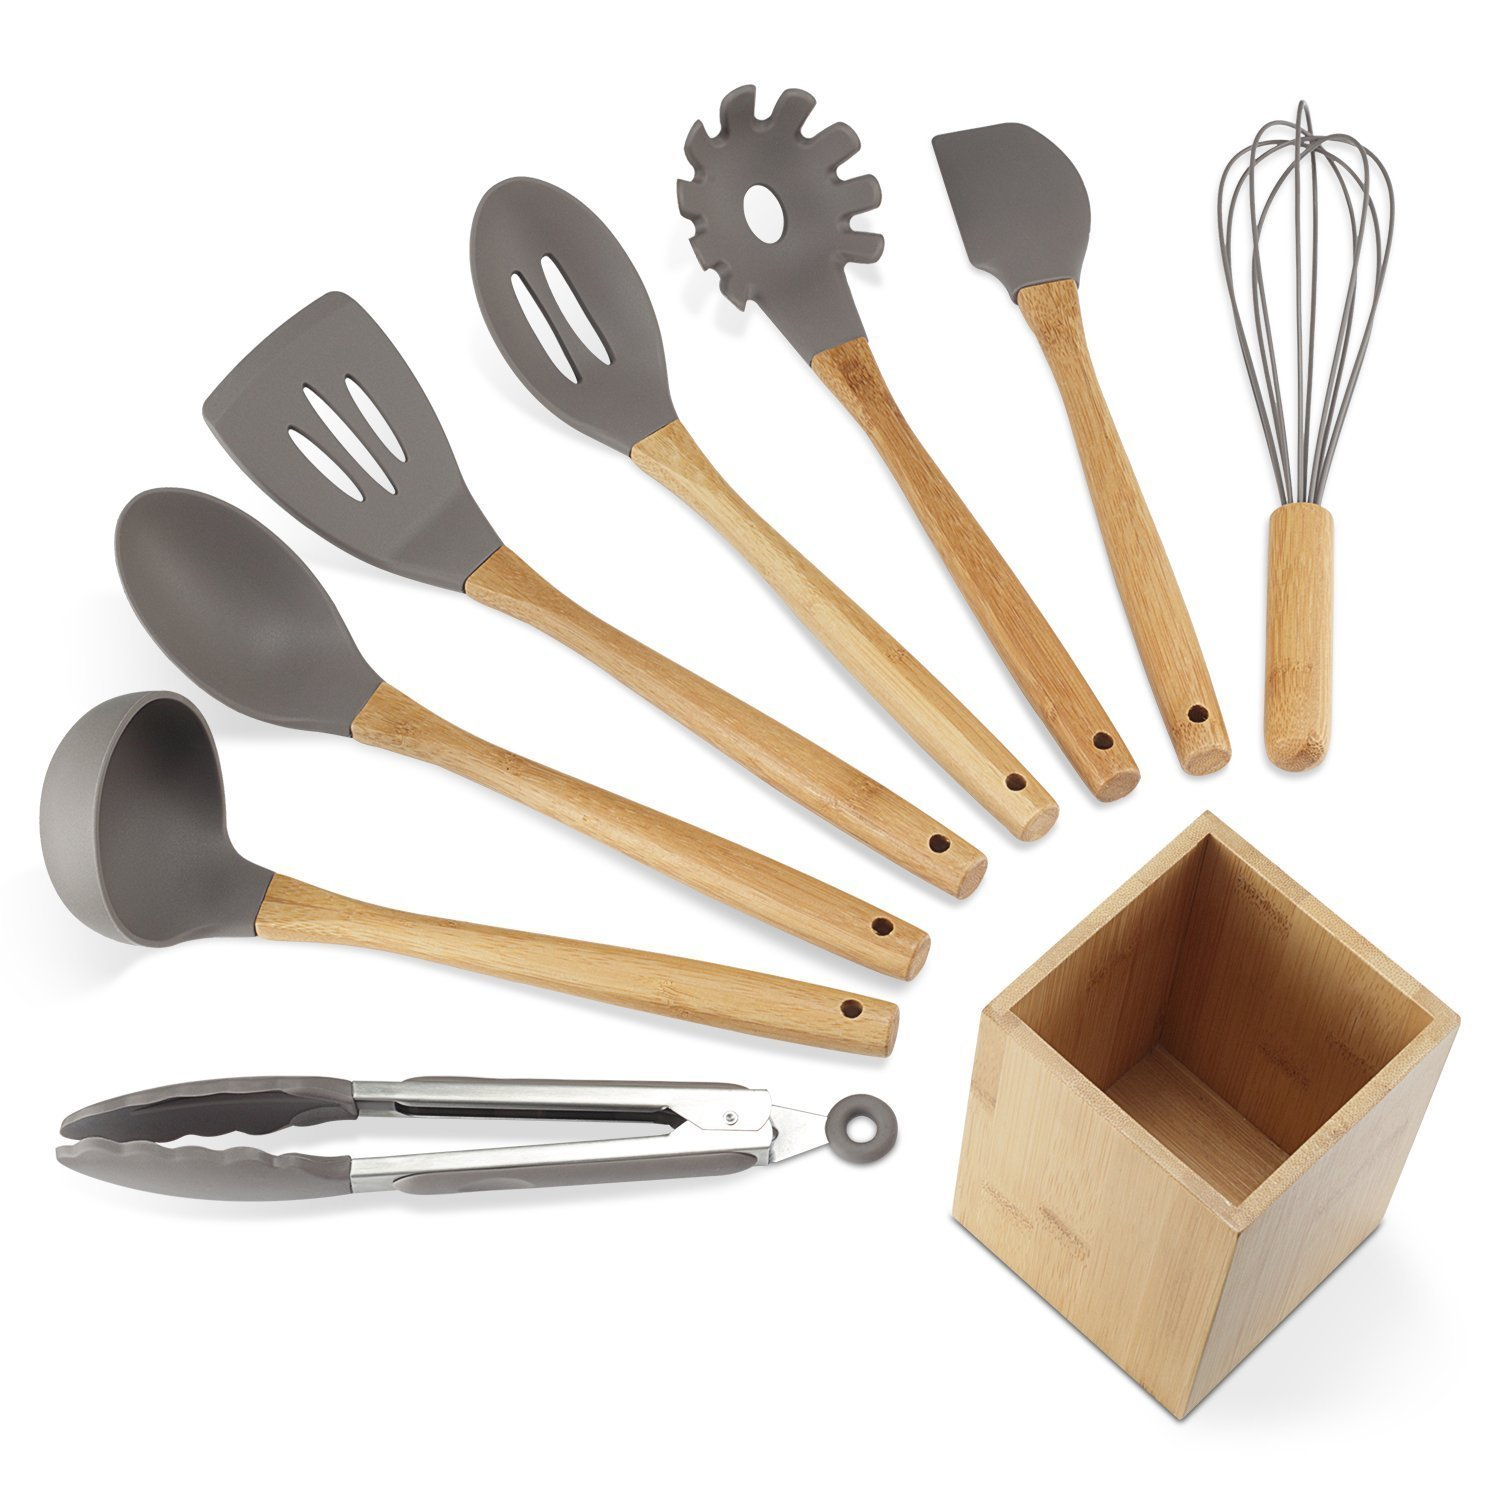 Cooking Spoons and Spaghetti Server NEXGADGET Premium 5-Piece Bamboo Kitchen Utensil Set Includes Cooking Turners Slotted Turner